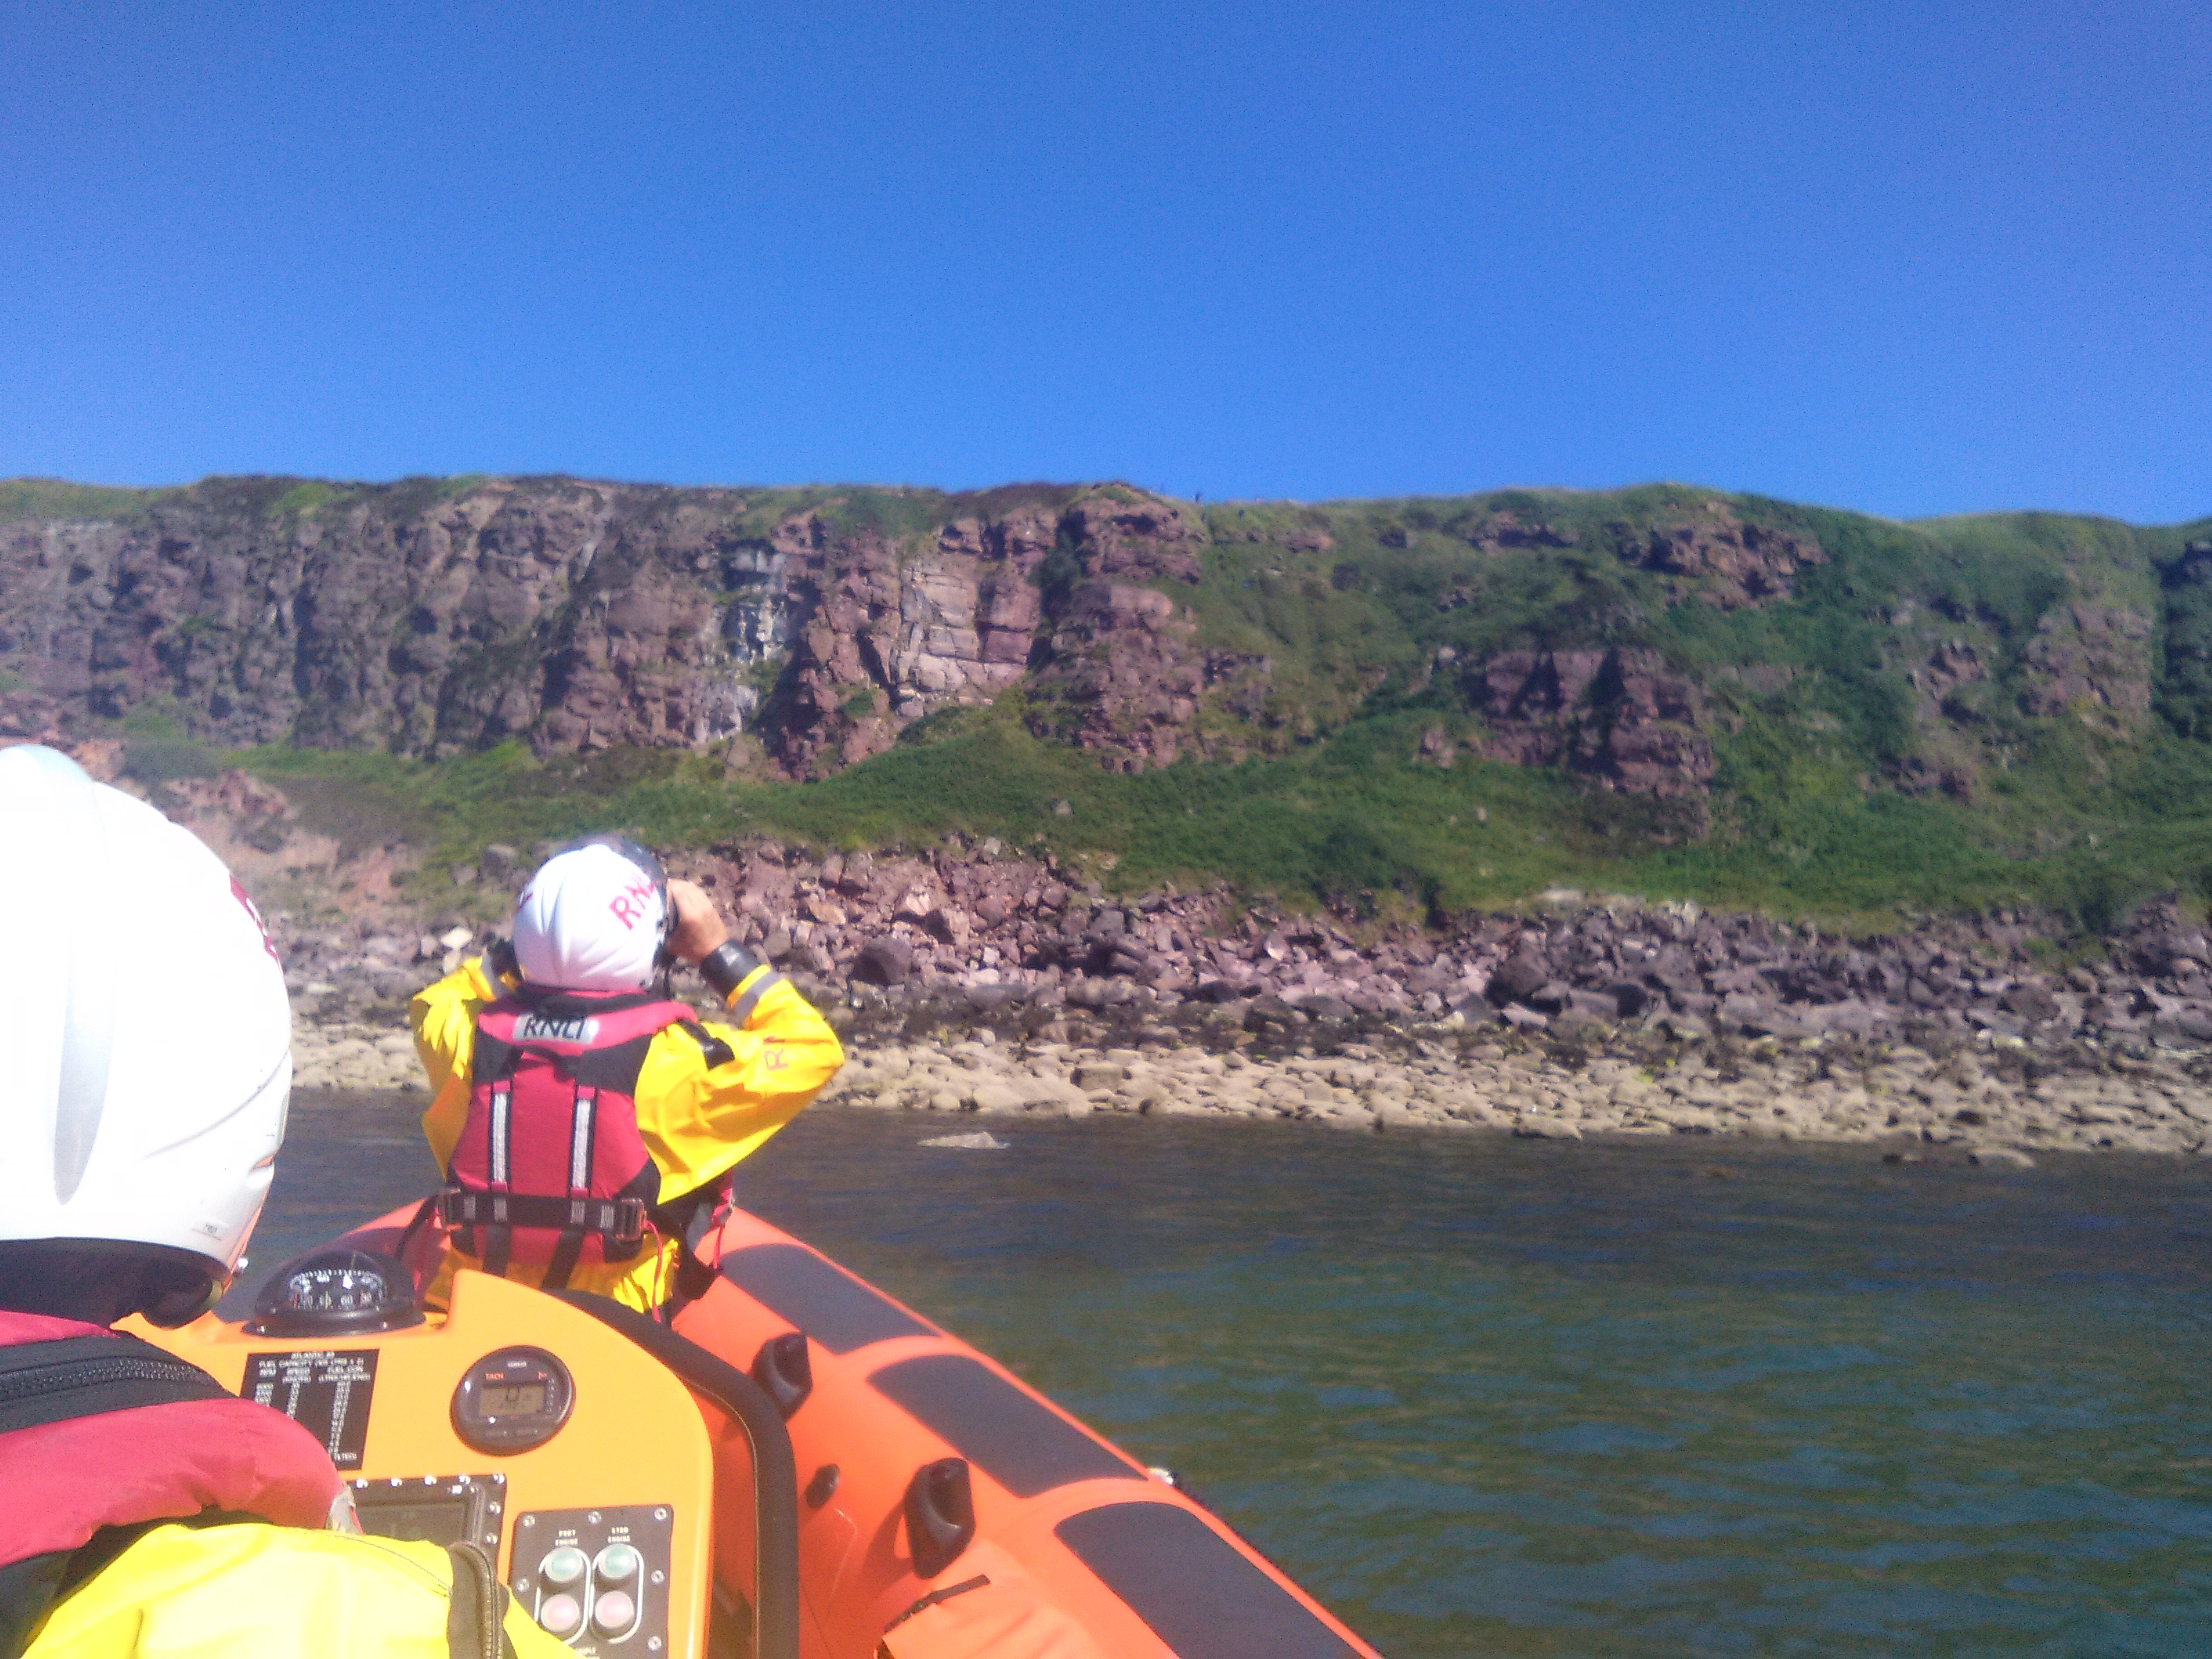 St Bees crew searching for the dog that had fallen down the cliffs